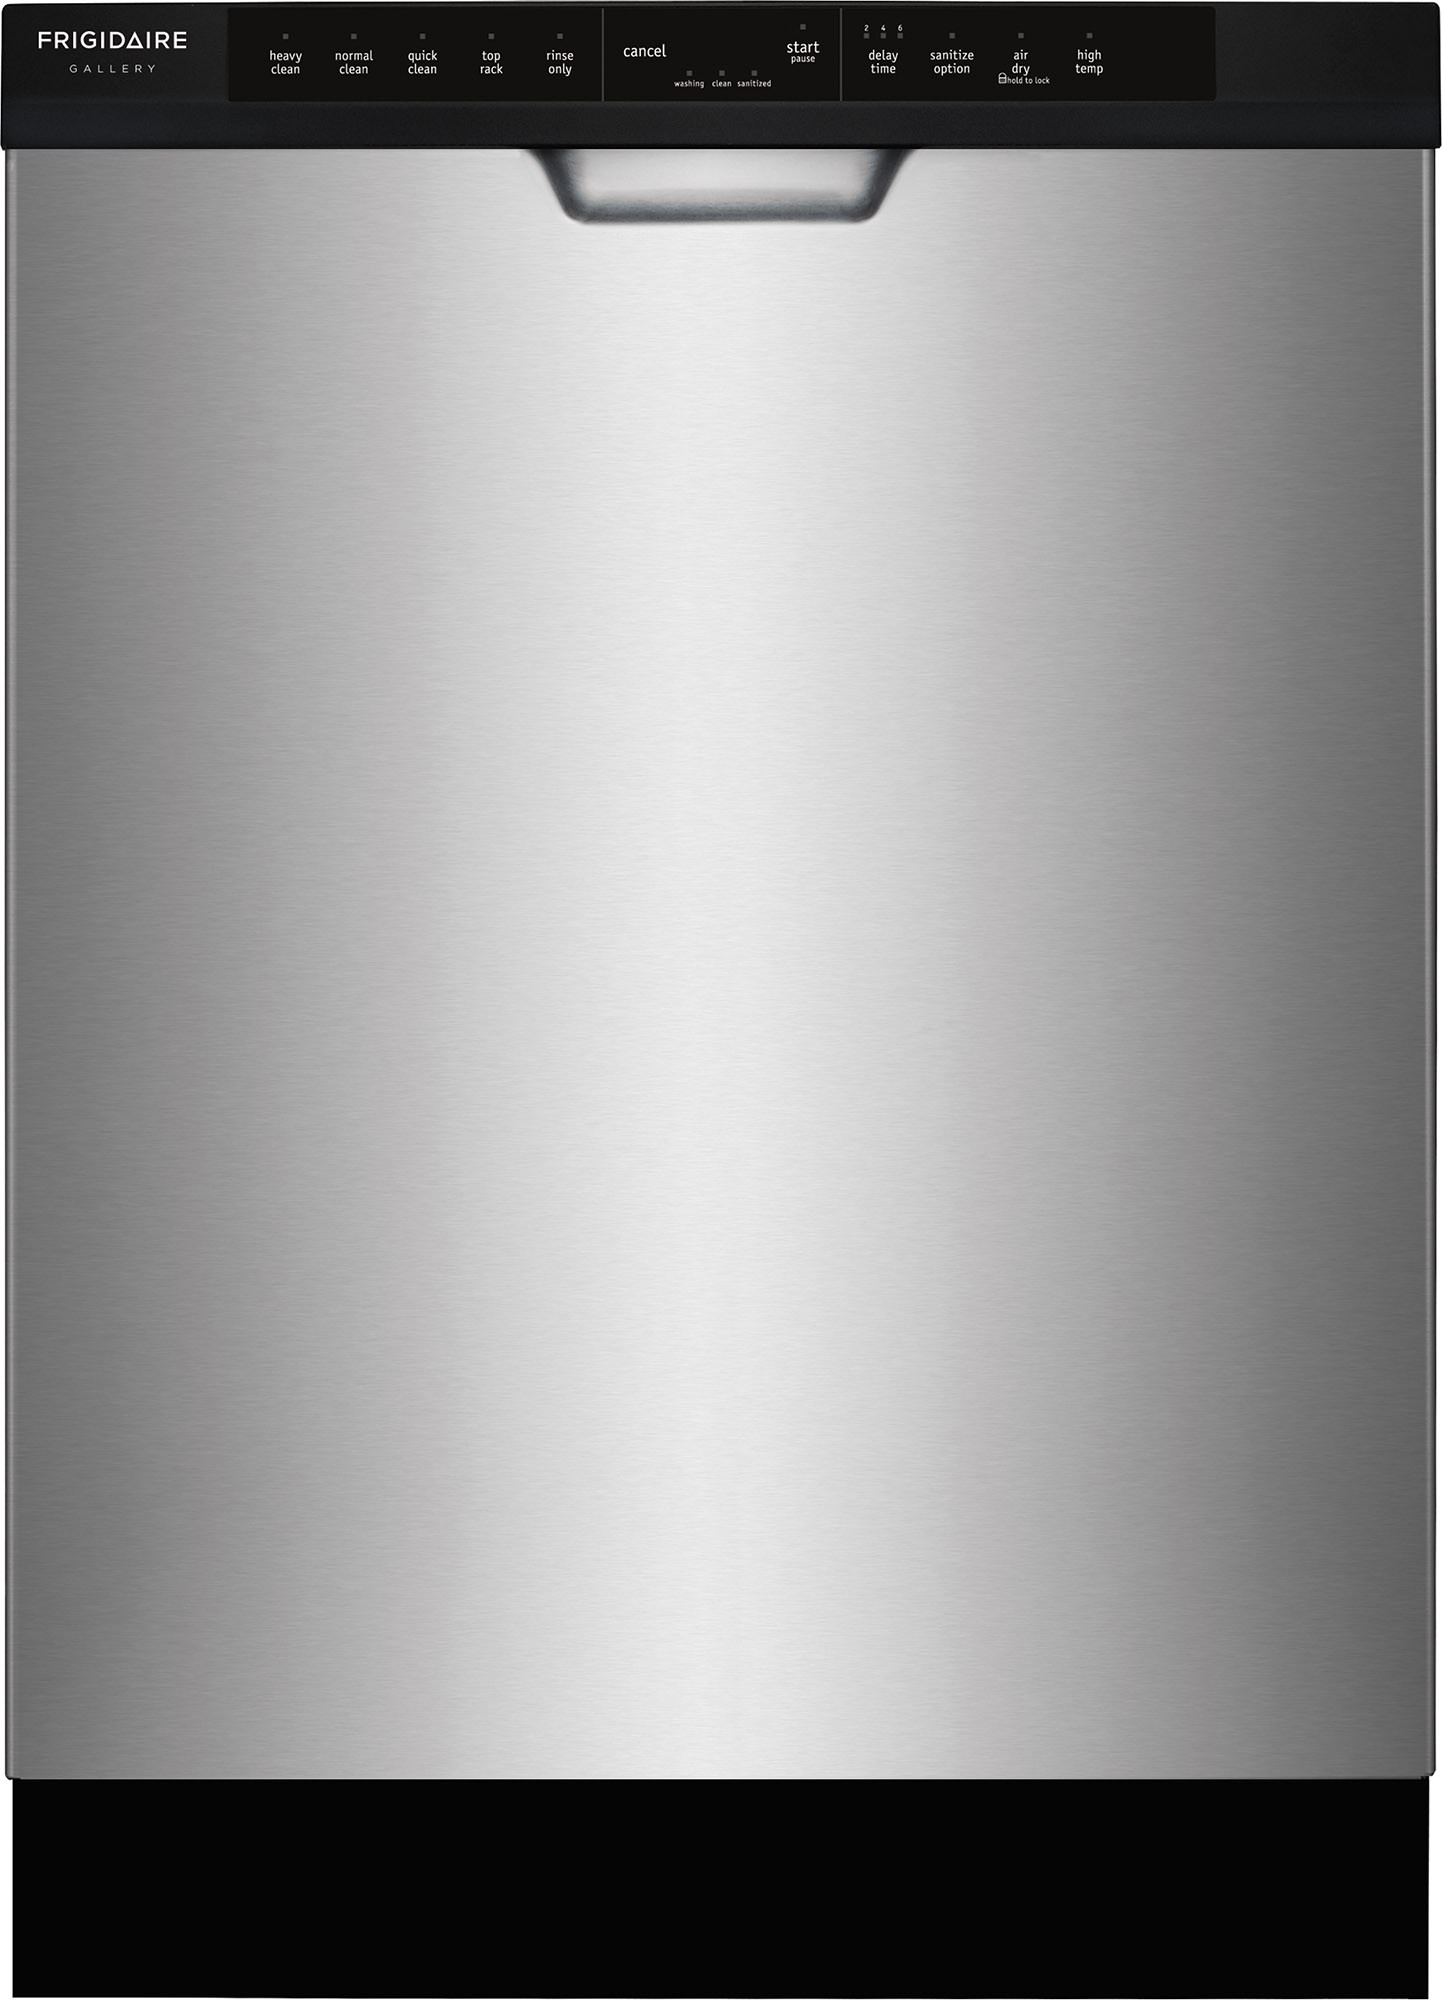 Frigidaire Fgcd2444sf 24 Inch Full Console Built In Dishwasher With 14 Place Settings 5 Wash Cycles 54 Dba Silence Rating Effortless Dry Bladespray Arm Dishsense Store More Capacity Quick Clean Delay Start Nsf Certified Rinse